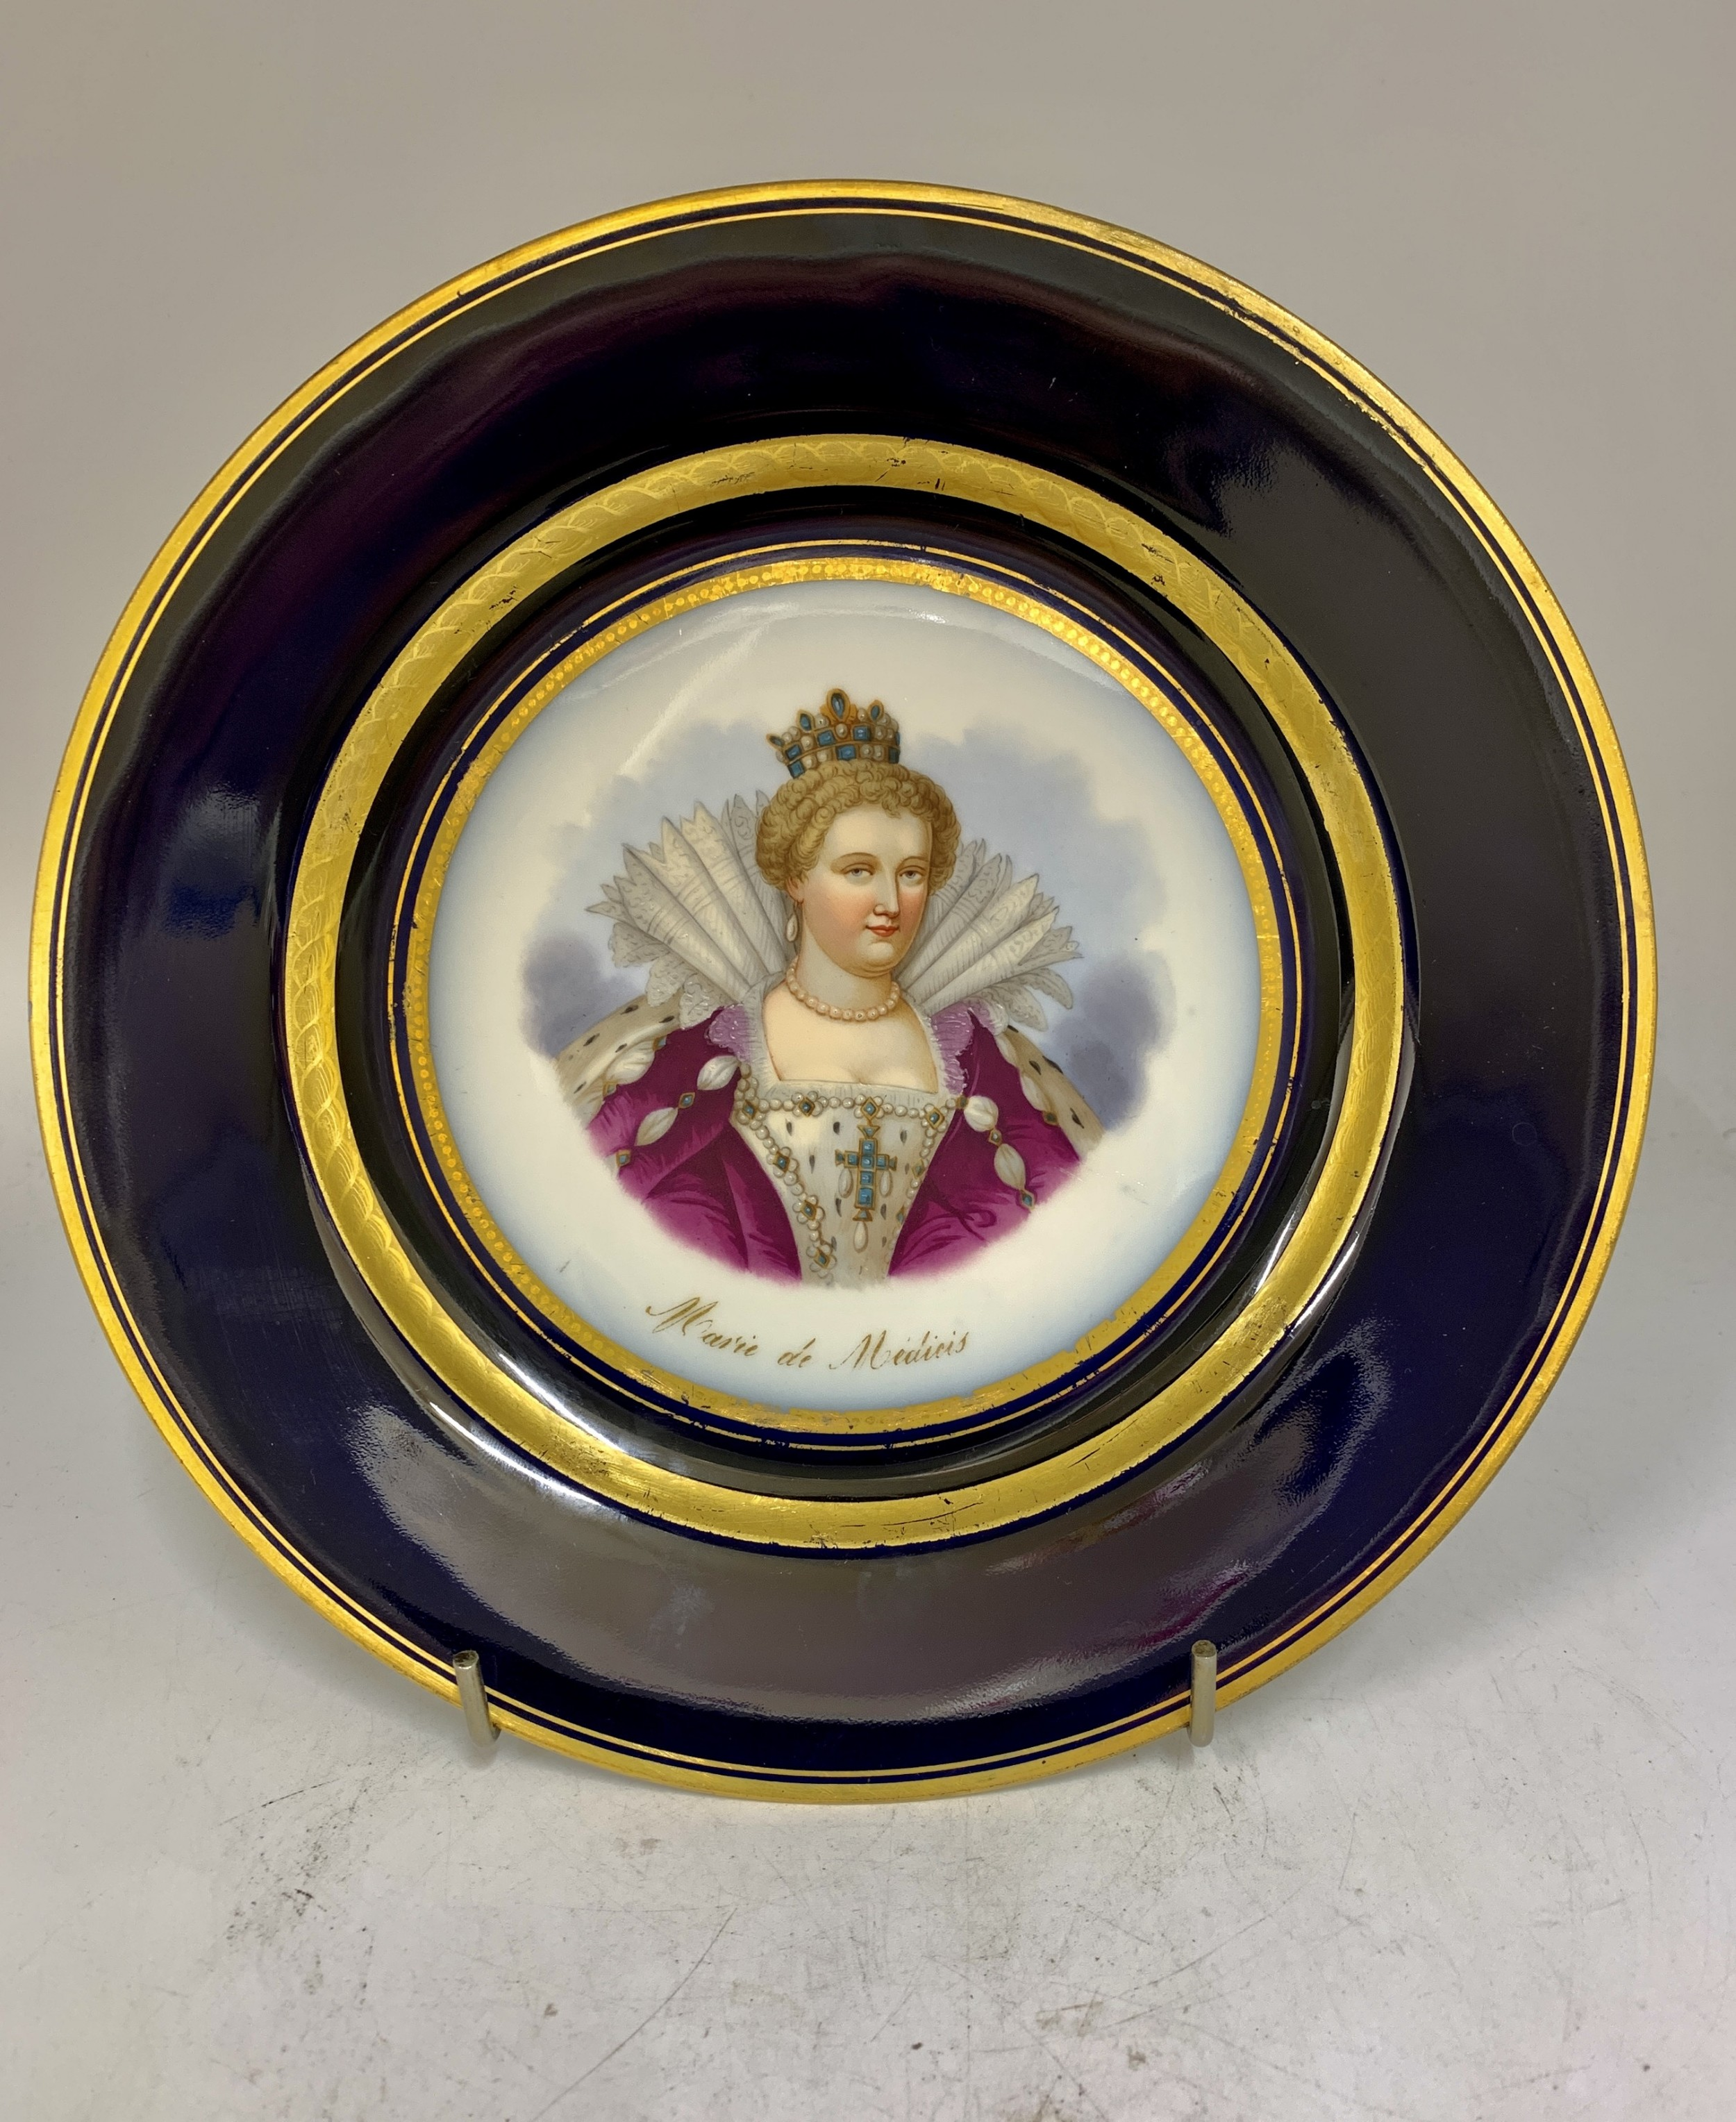 19 th century french porcelain sevres design cabinet plate circa 1850